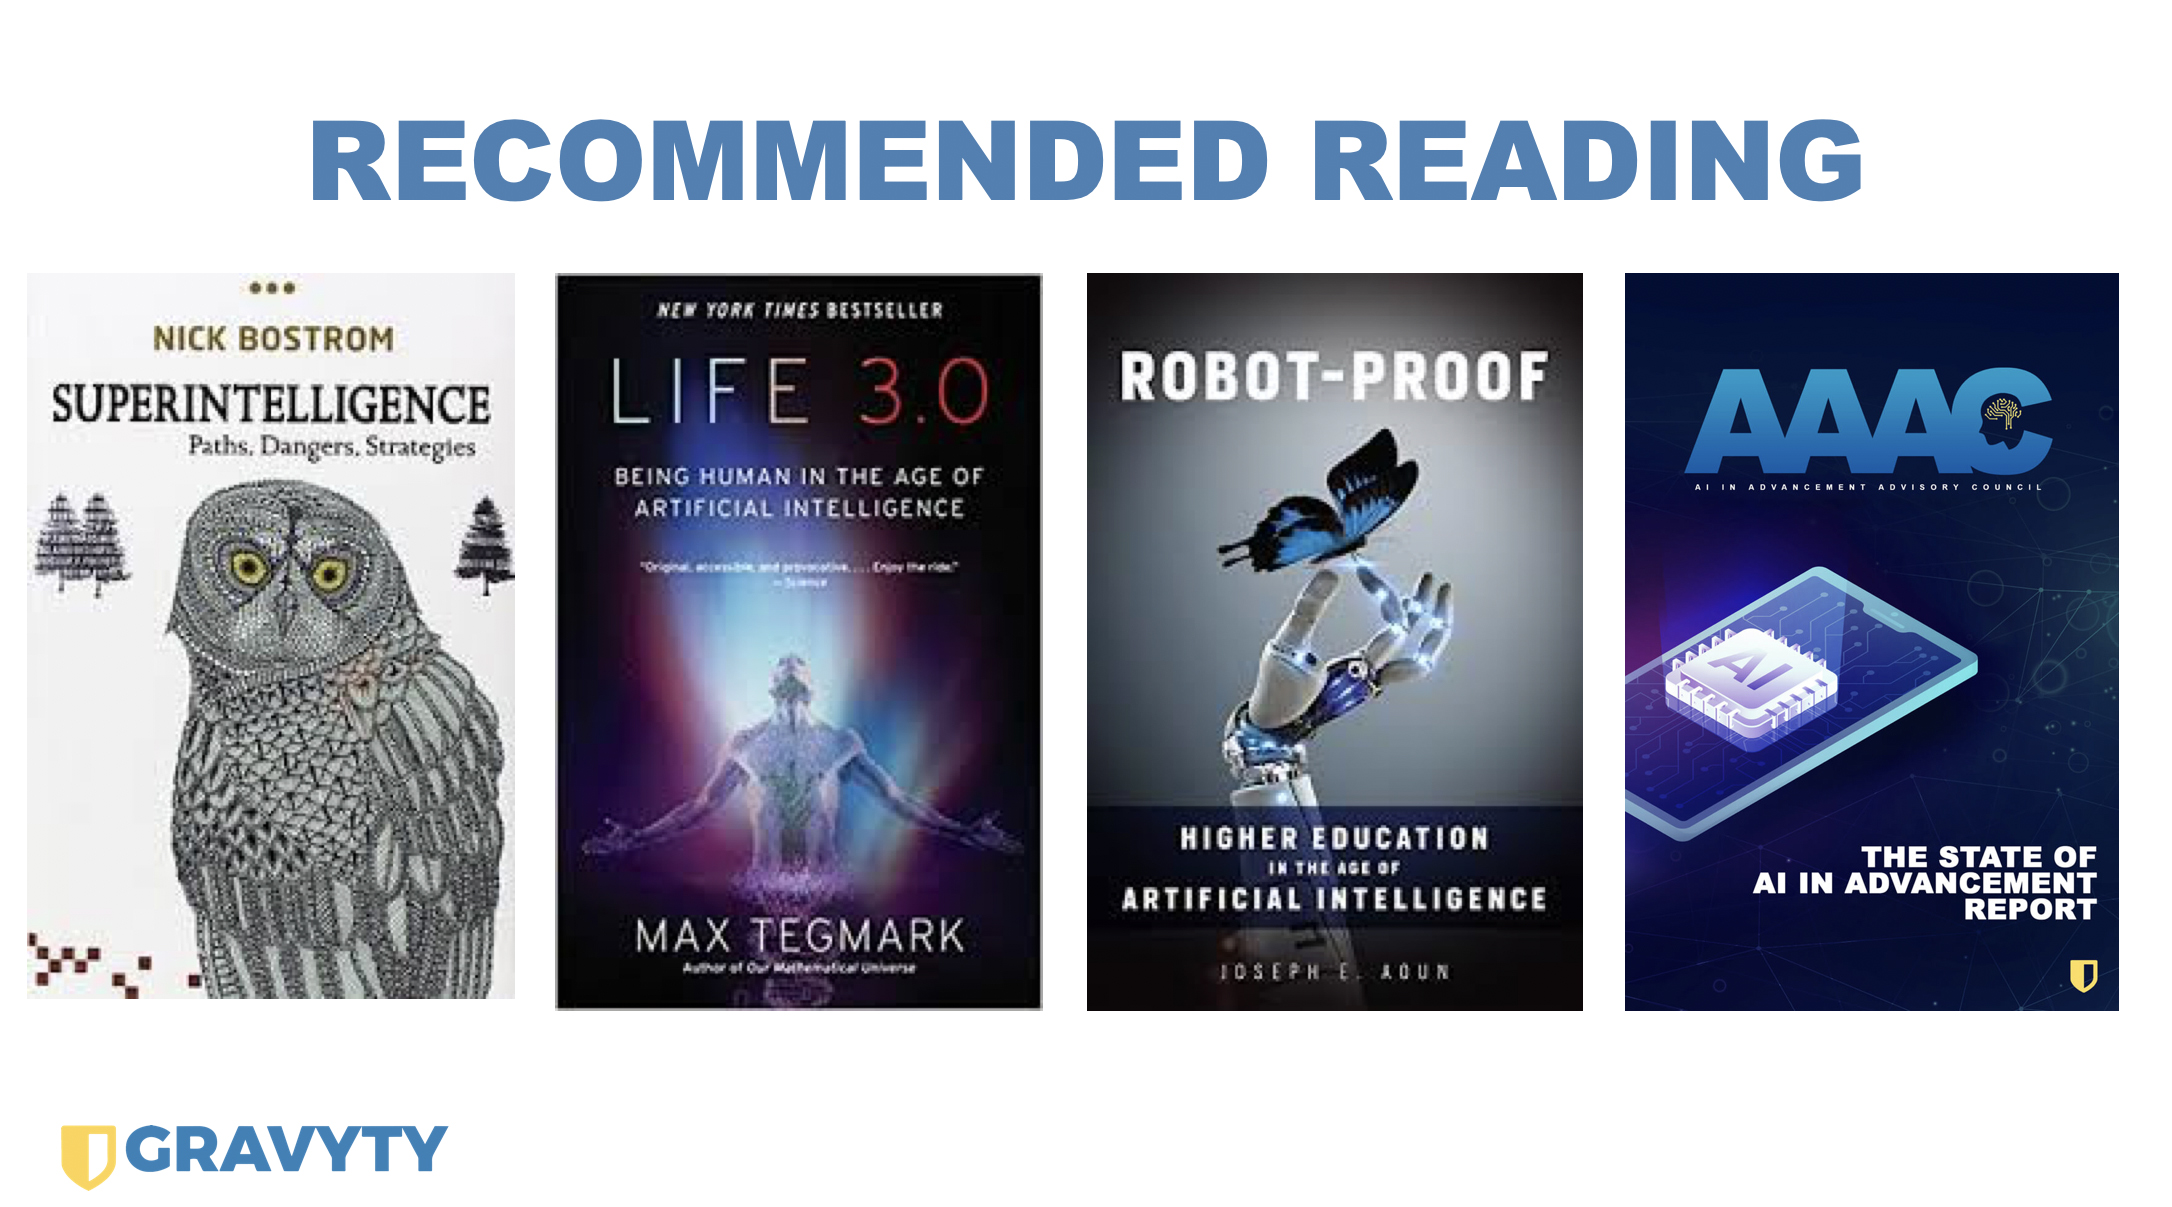 Recommended Reading: Nick Bostrom's Superintelligence, Max Tegmark's Life 3.0, Joseph E. Aoum's Robot-Proof, The AAAC's State of AI in Advancement Report